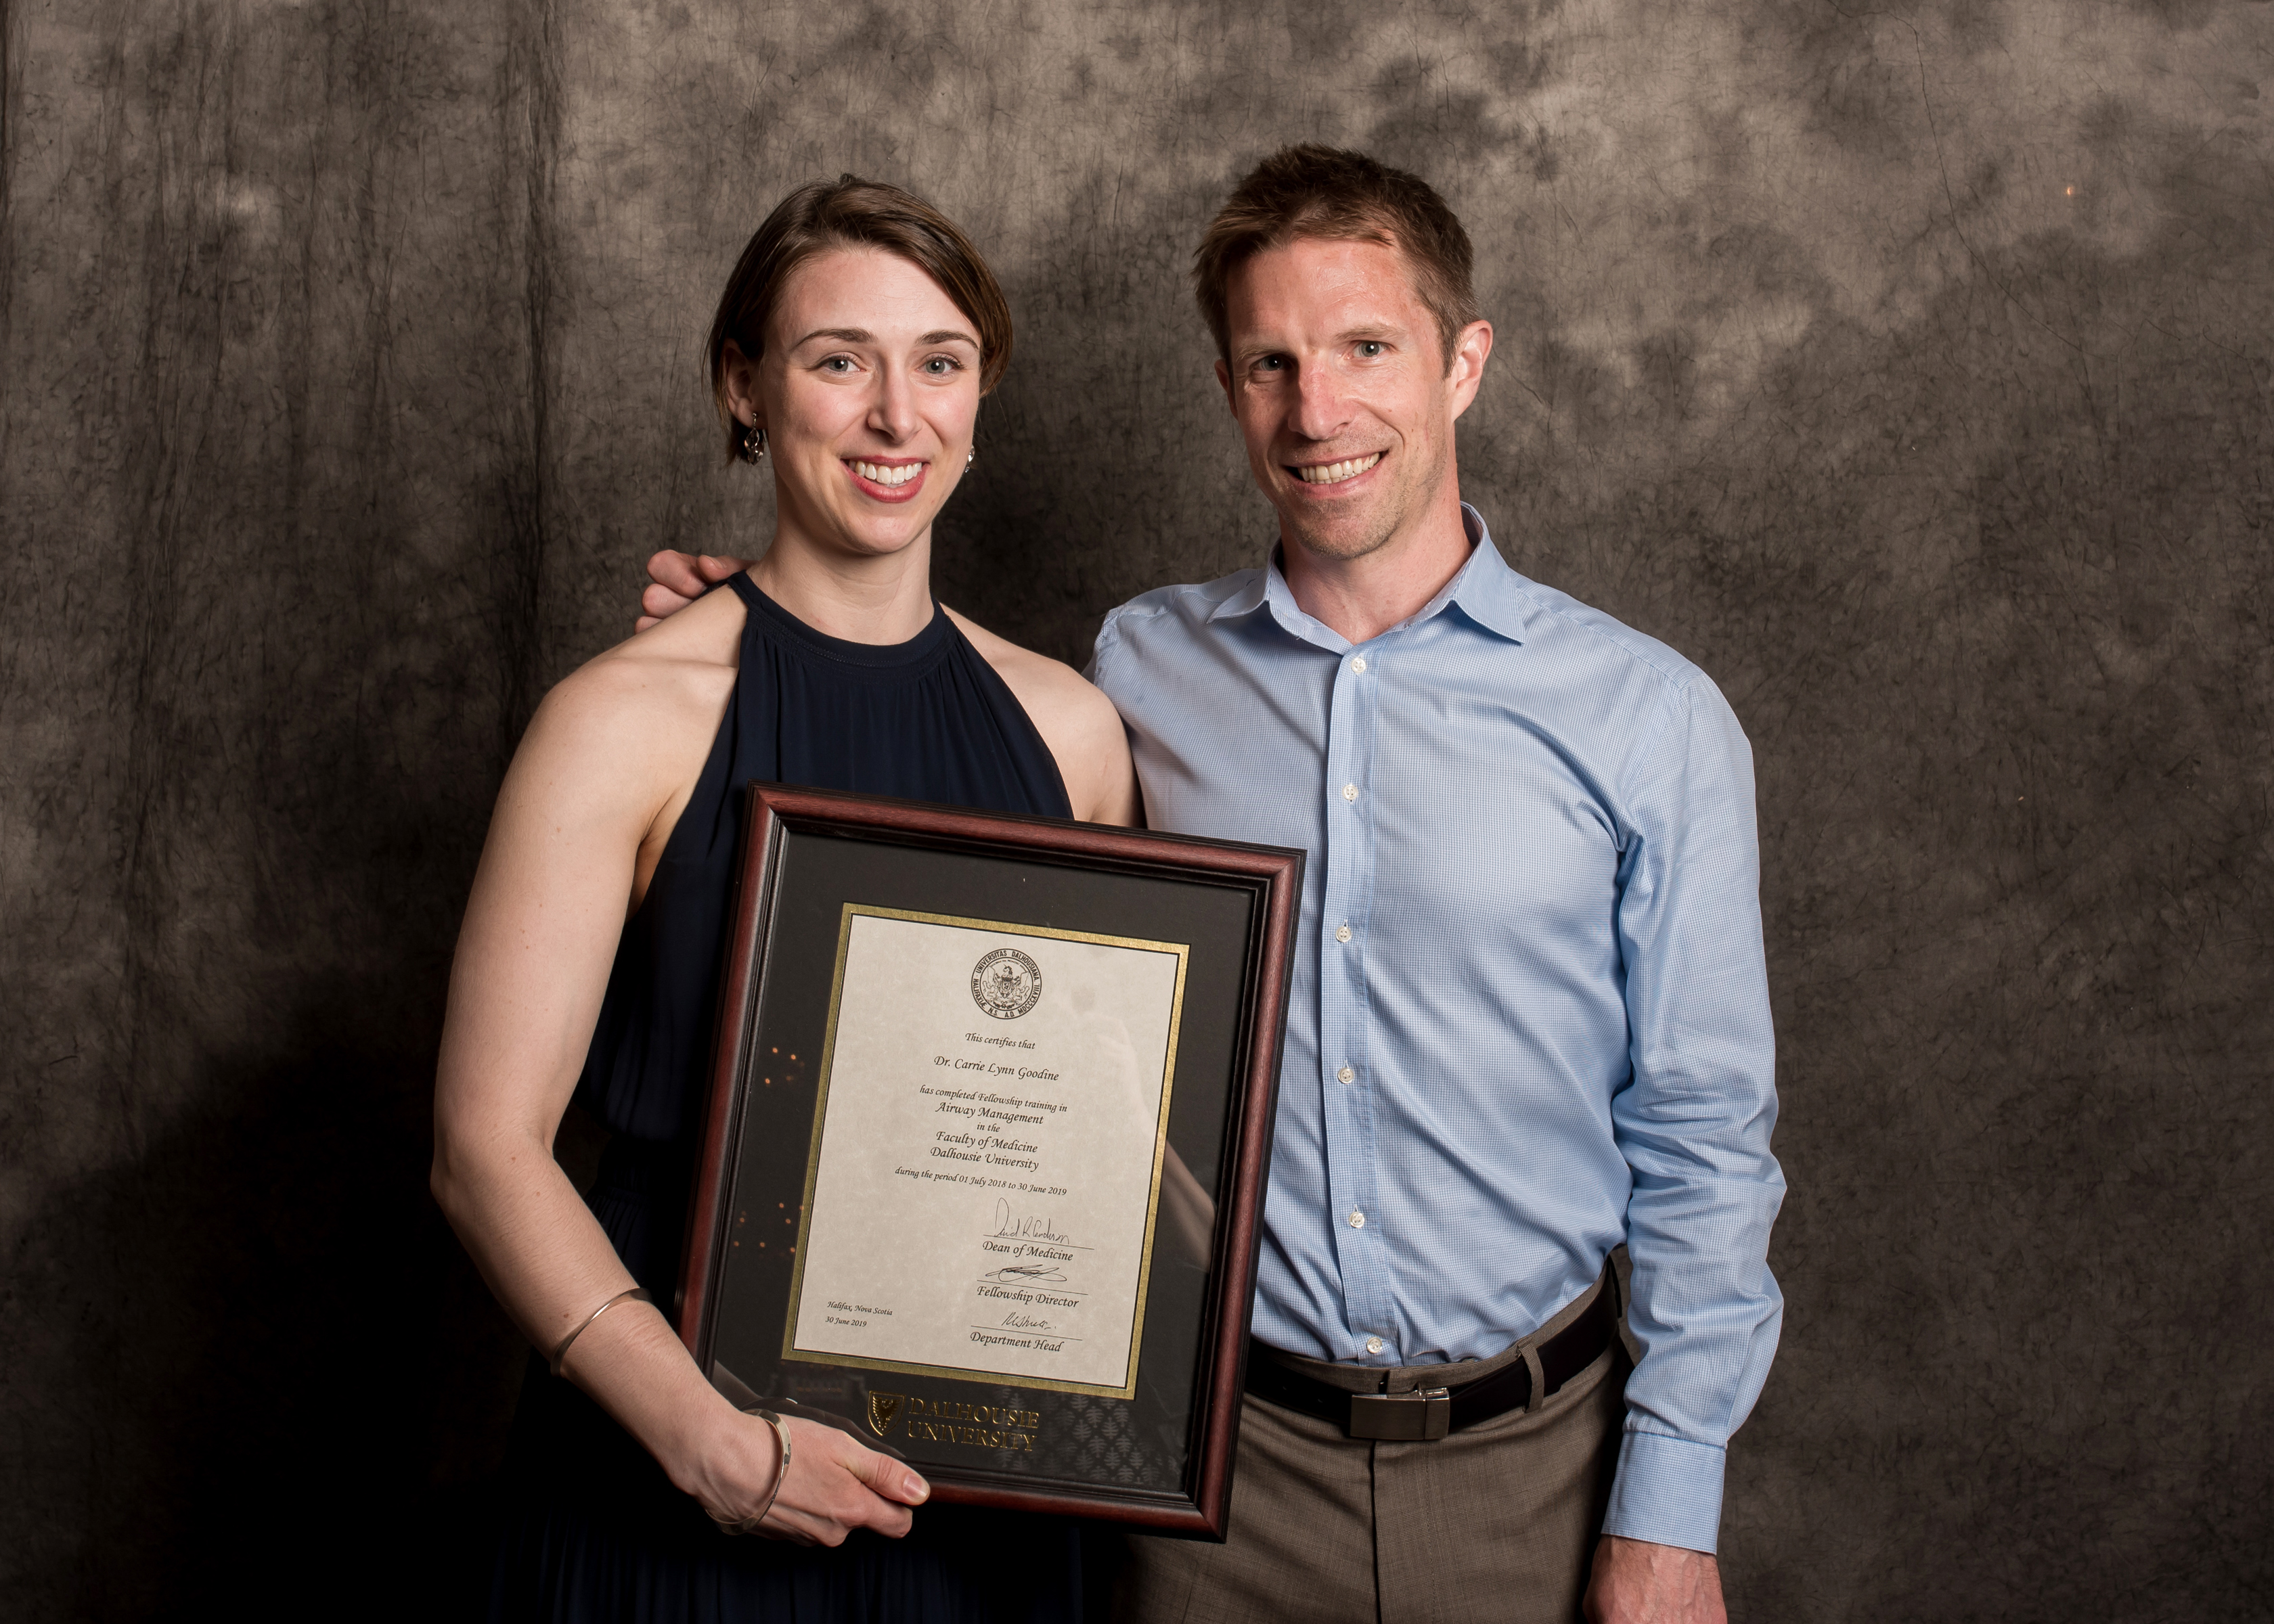 Dr. Tim Mullen and Dr. Carrie Goodine